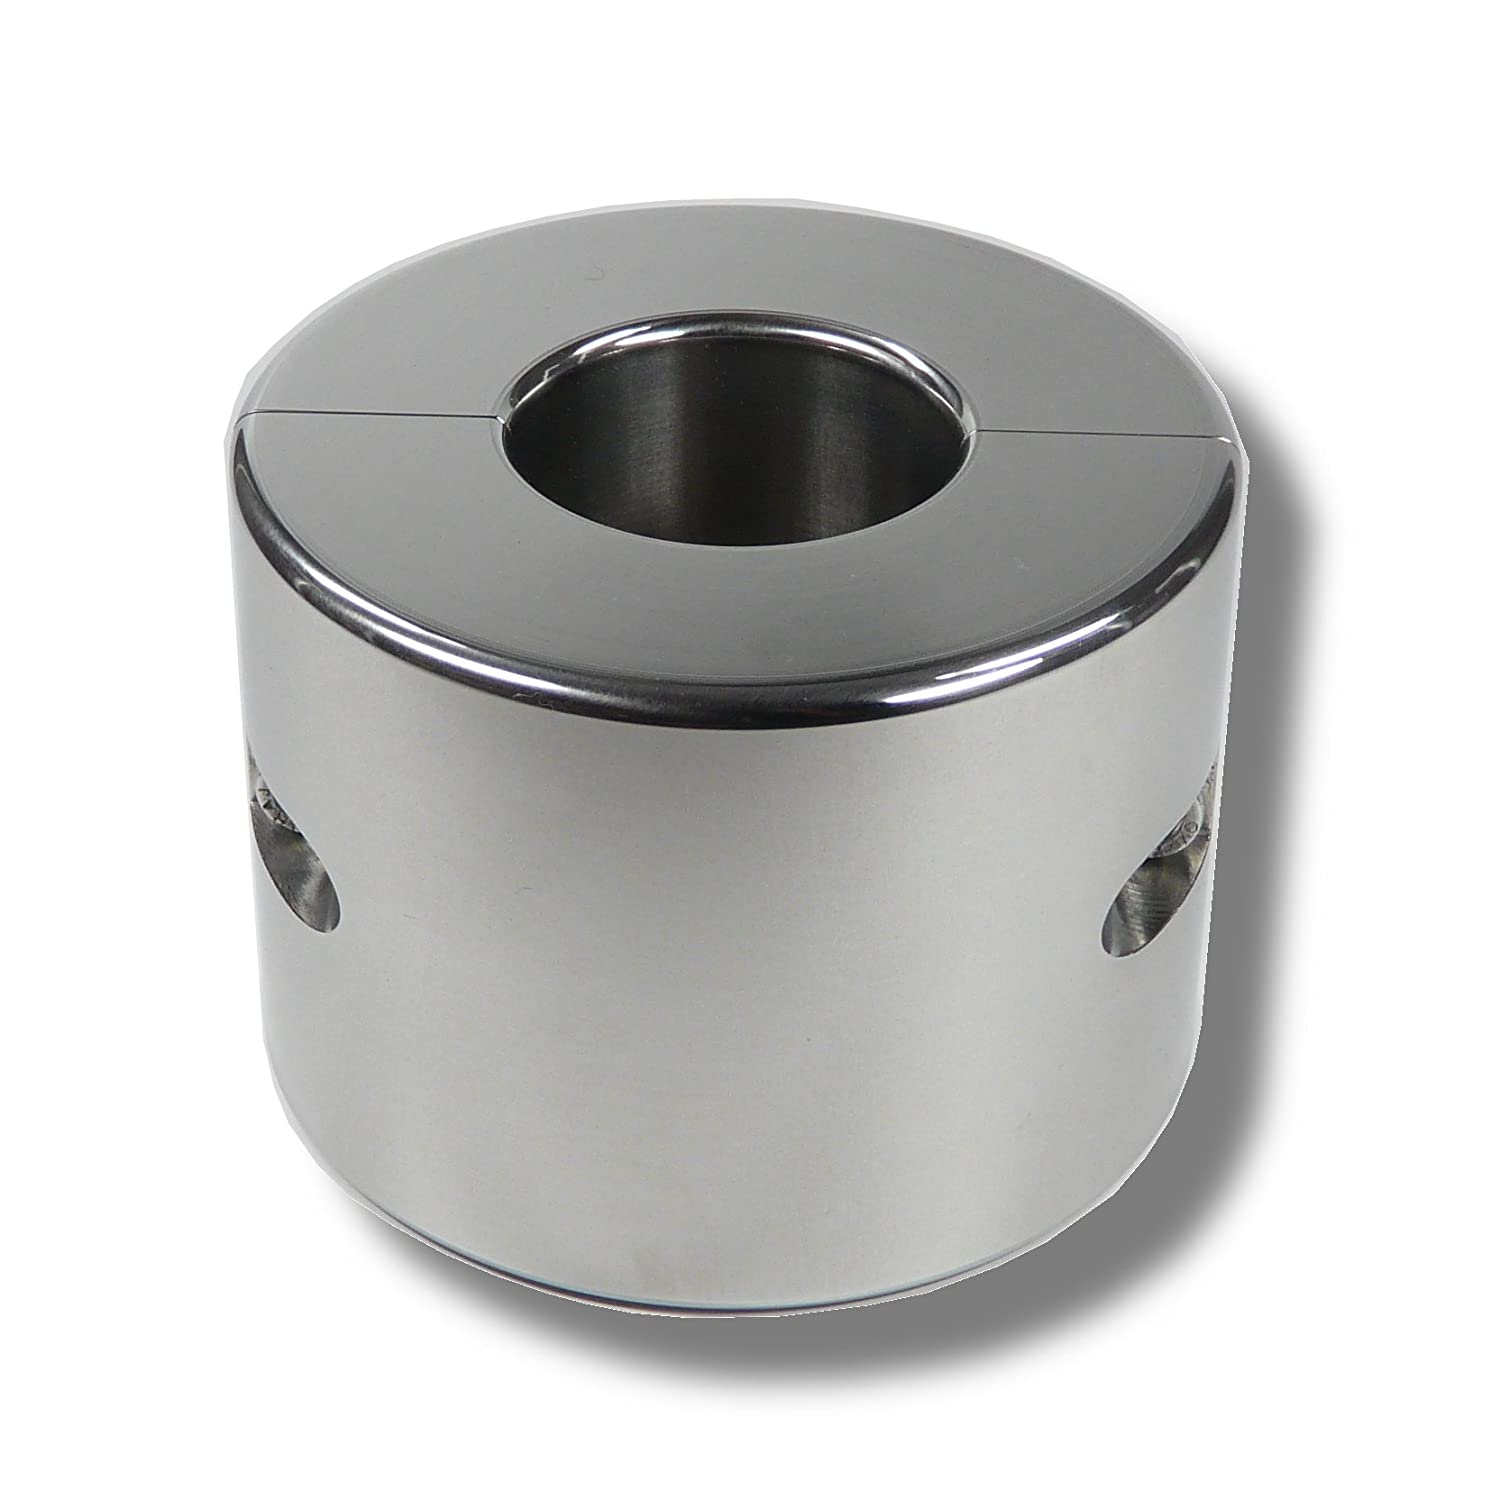 Ball Stretcher in acciaio inox 60 mm mm mm Alto Made in Germany (28 mm, 4 kg) 62787e